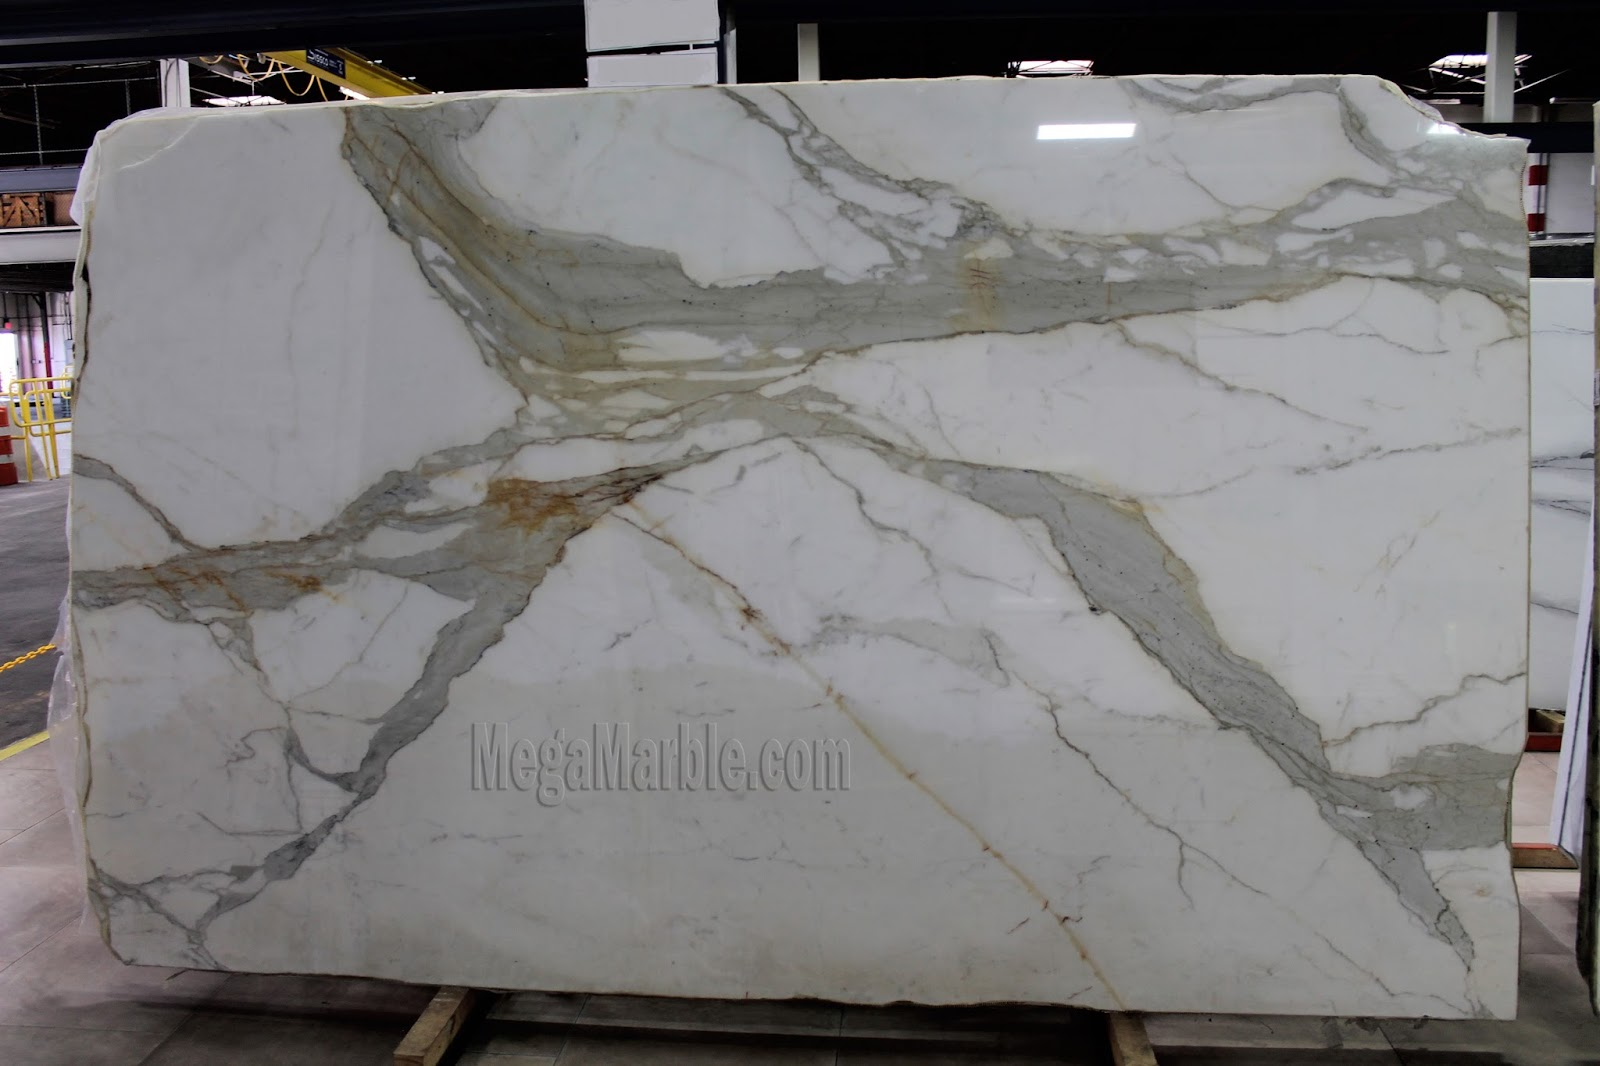 Calacatta Gold Marble : White marble kitchen countertop slabs countertops new york